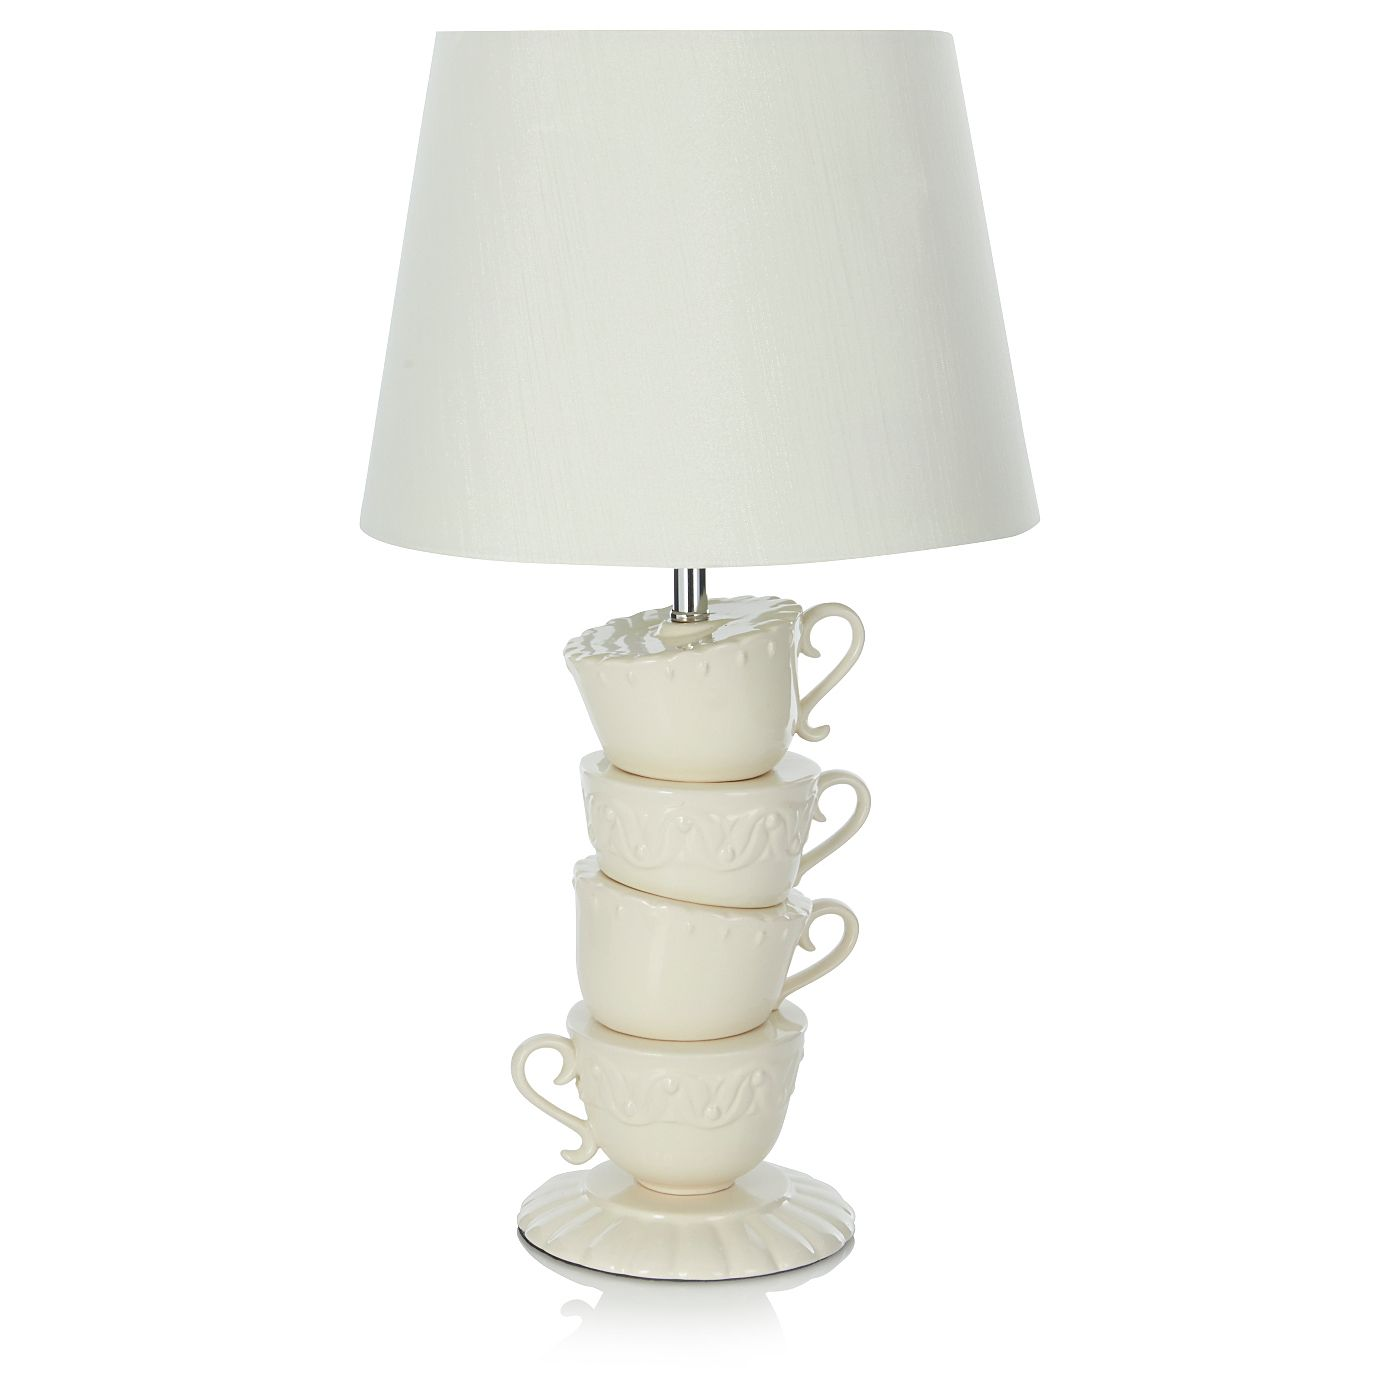 George Home Teacup Lamp Cream Lighting Asda Direct Home  # Muebles Pikeando